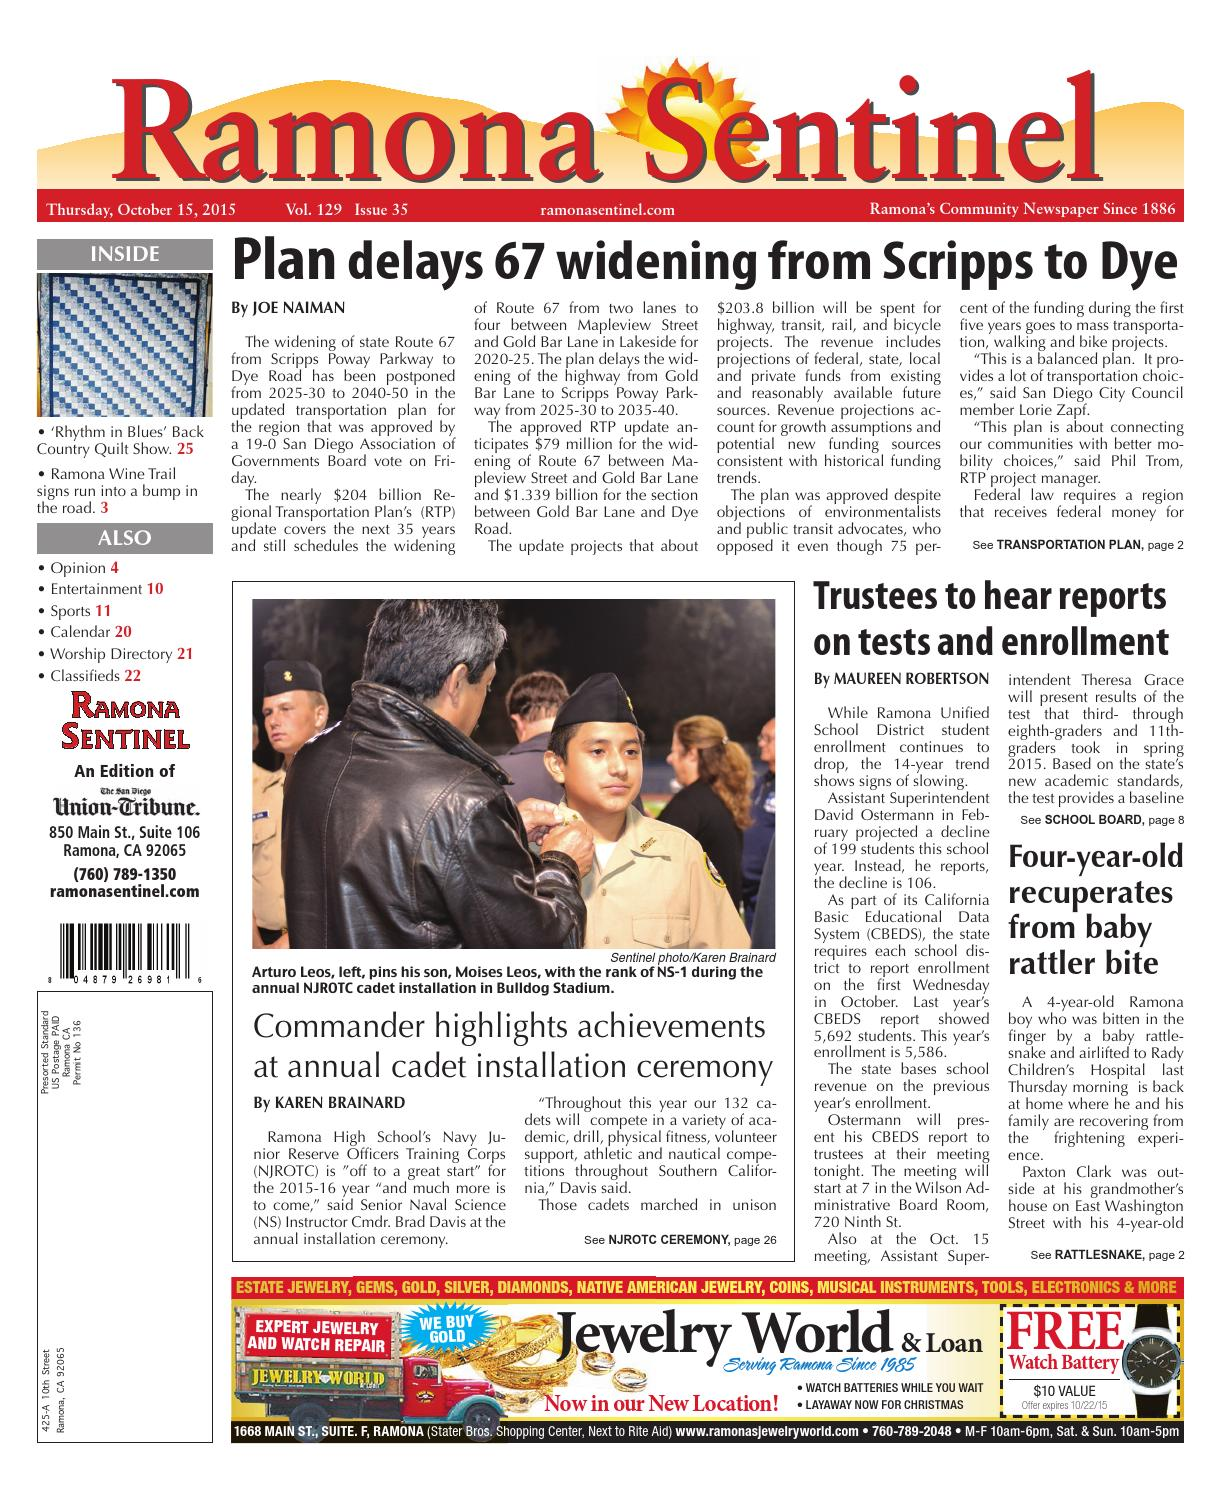 Ramona Sentinel 10.15.15 by MainStreet Media - issuu